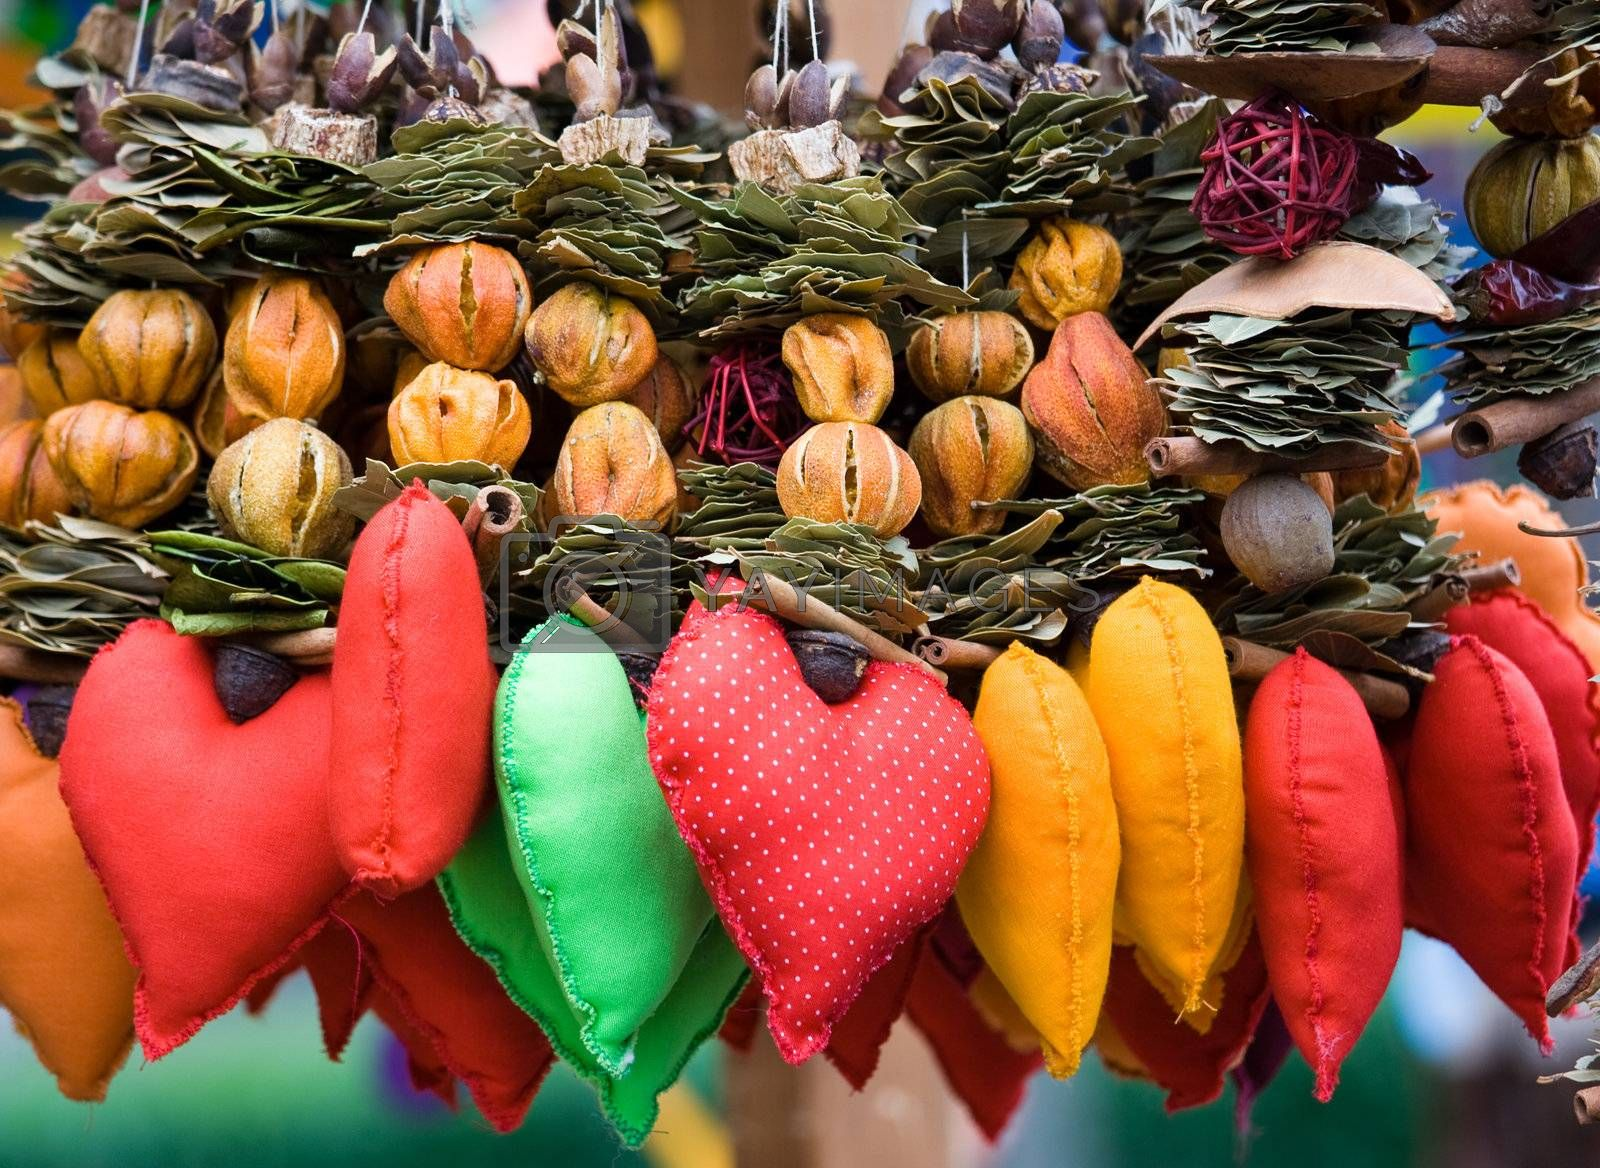 Red in spots heart among strings of dried fruits, leaves. Handicraft decor, souvenir for Valentine's day.